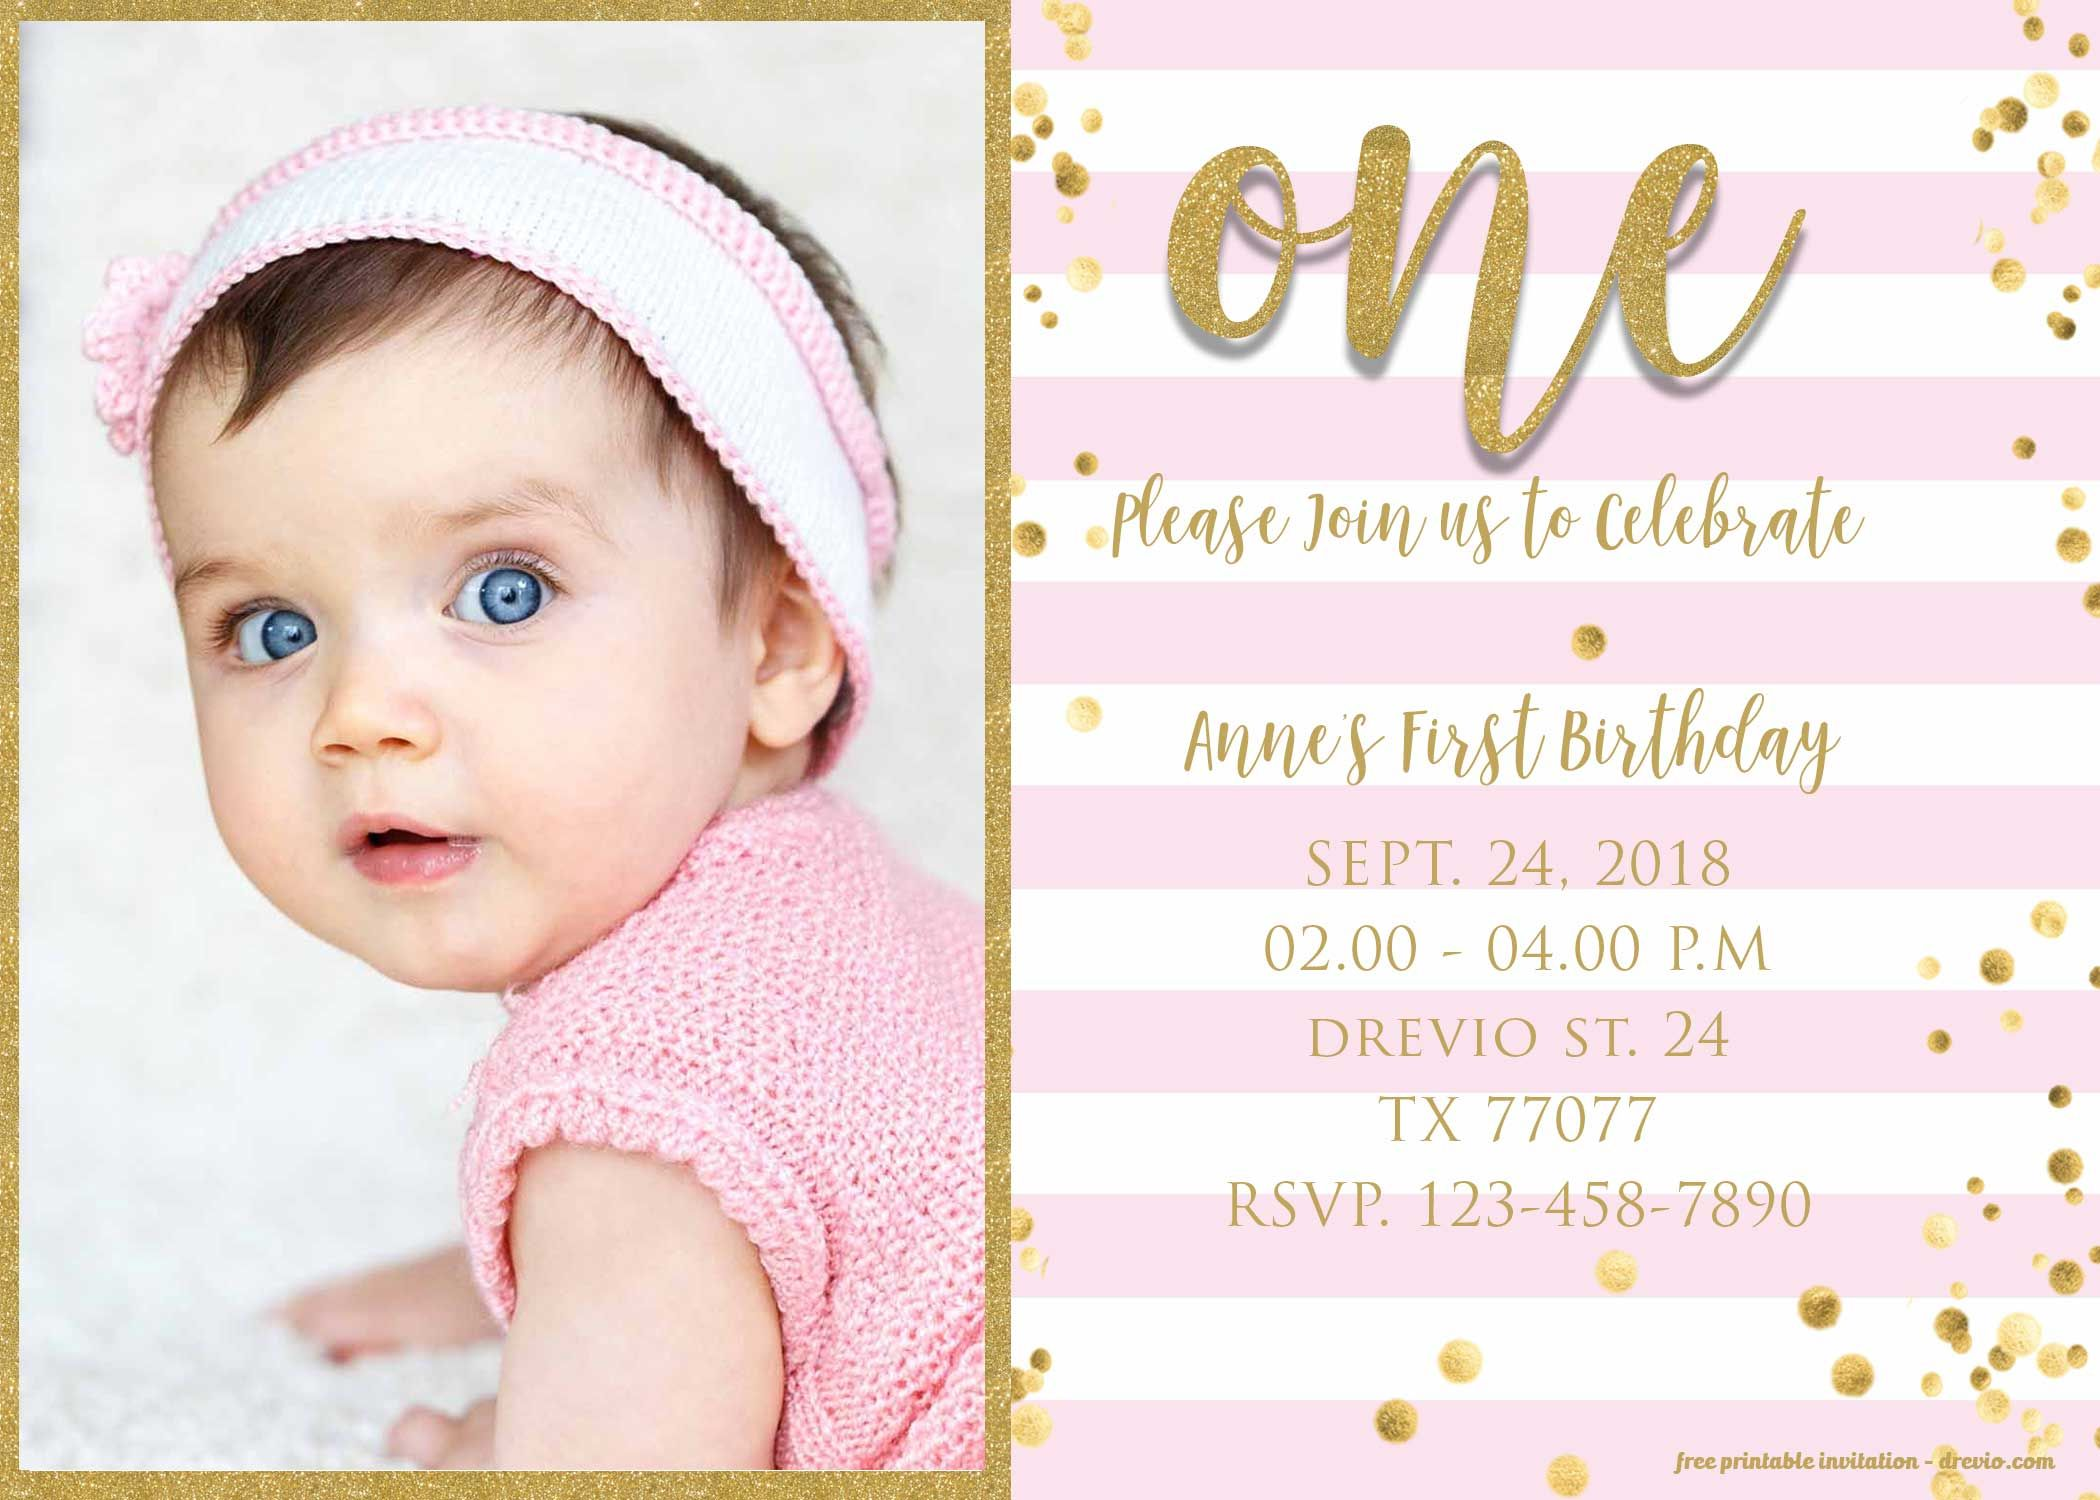 Free 1st Birthday Invitation Pink And Gold Glitter Template Drevio 1st Birthday Invitations Birthday Invitation Card Template 1st Birthday Invitations Girl